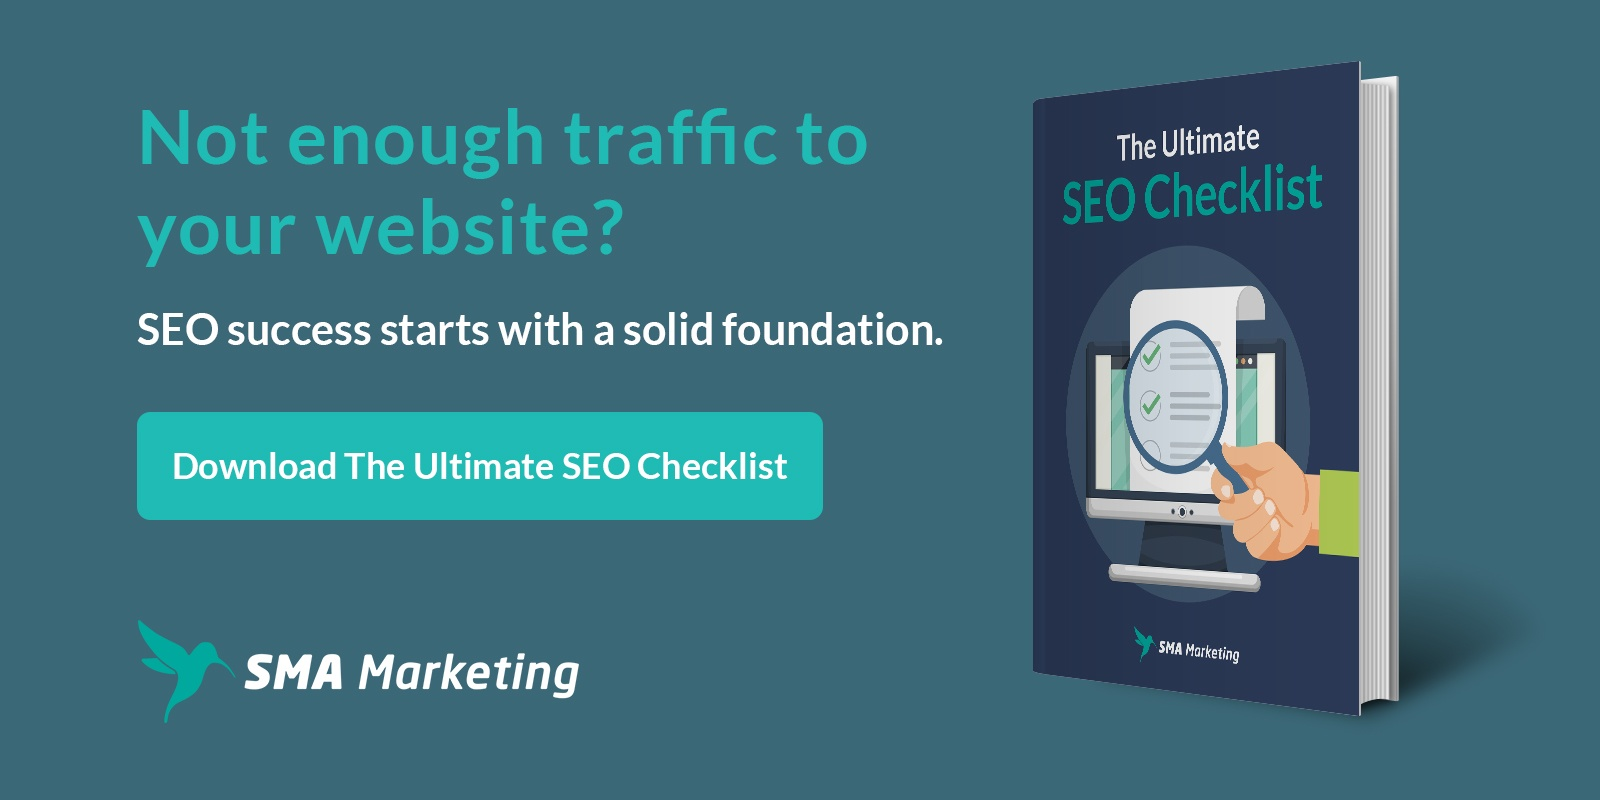 The Ultimate SEO Checklist - increase website traffic